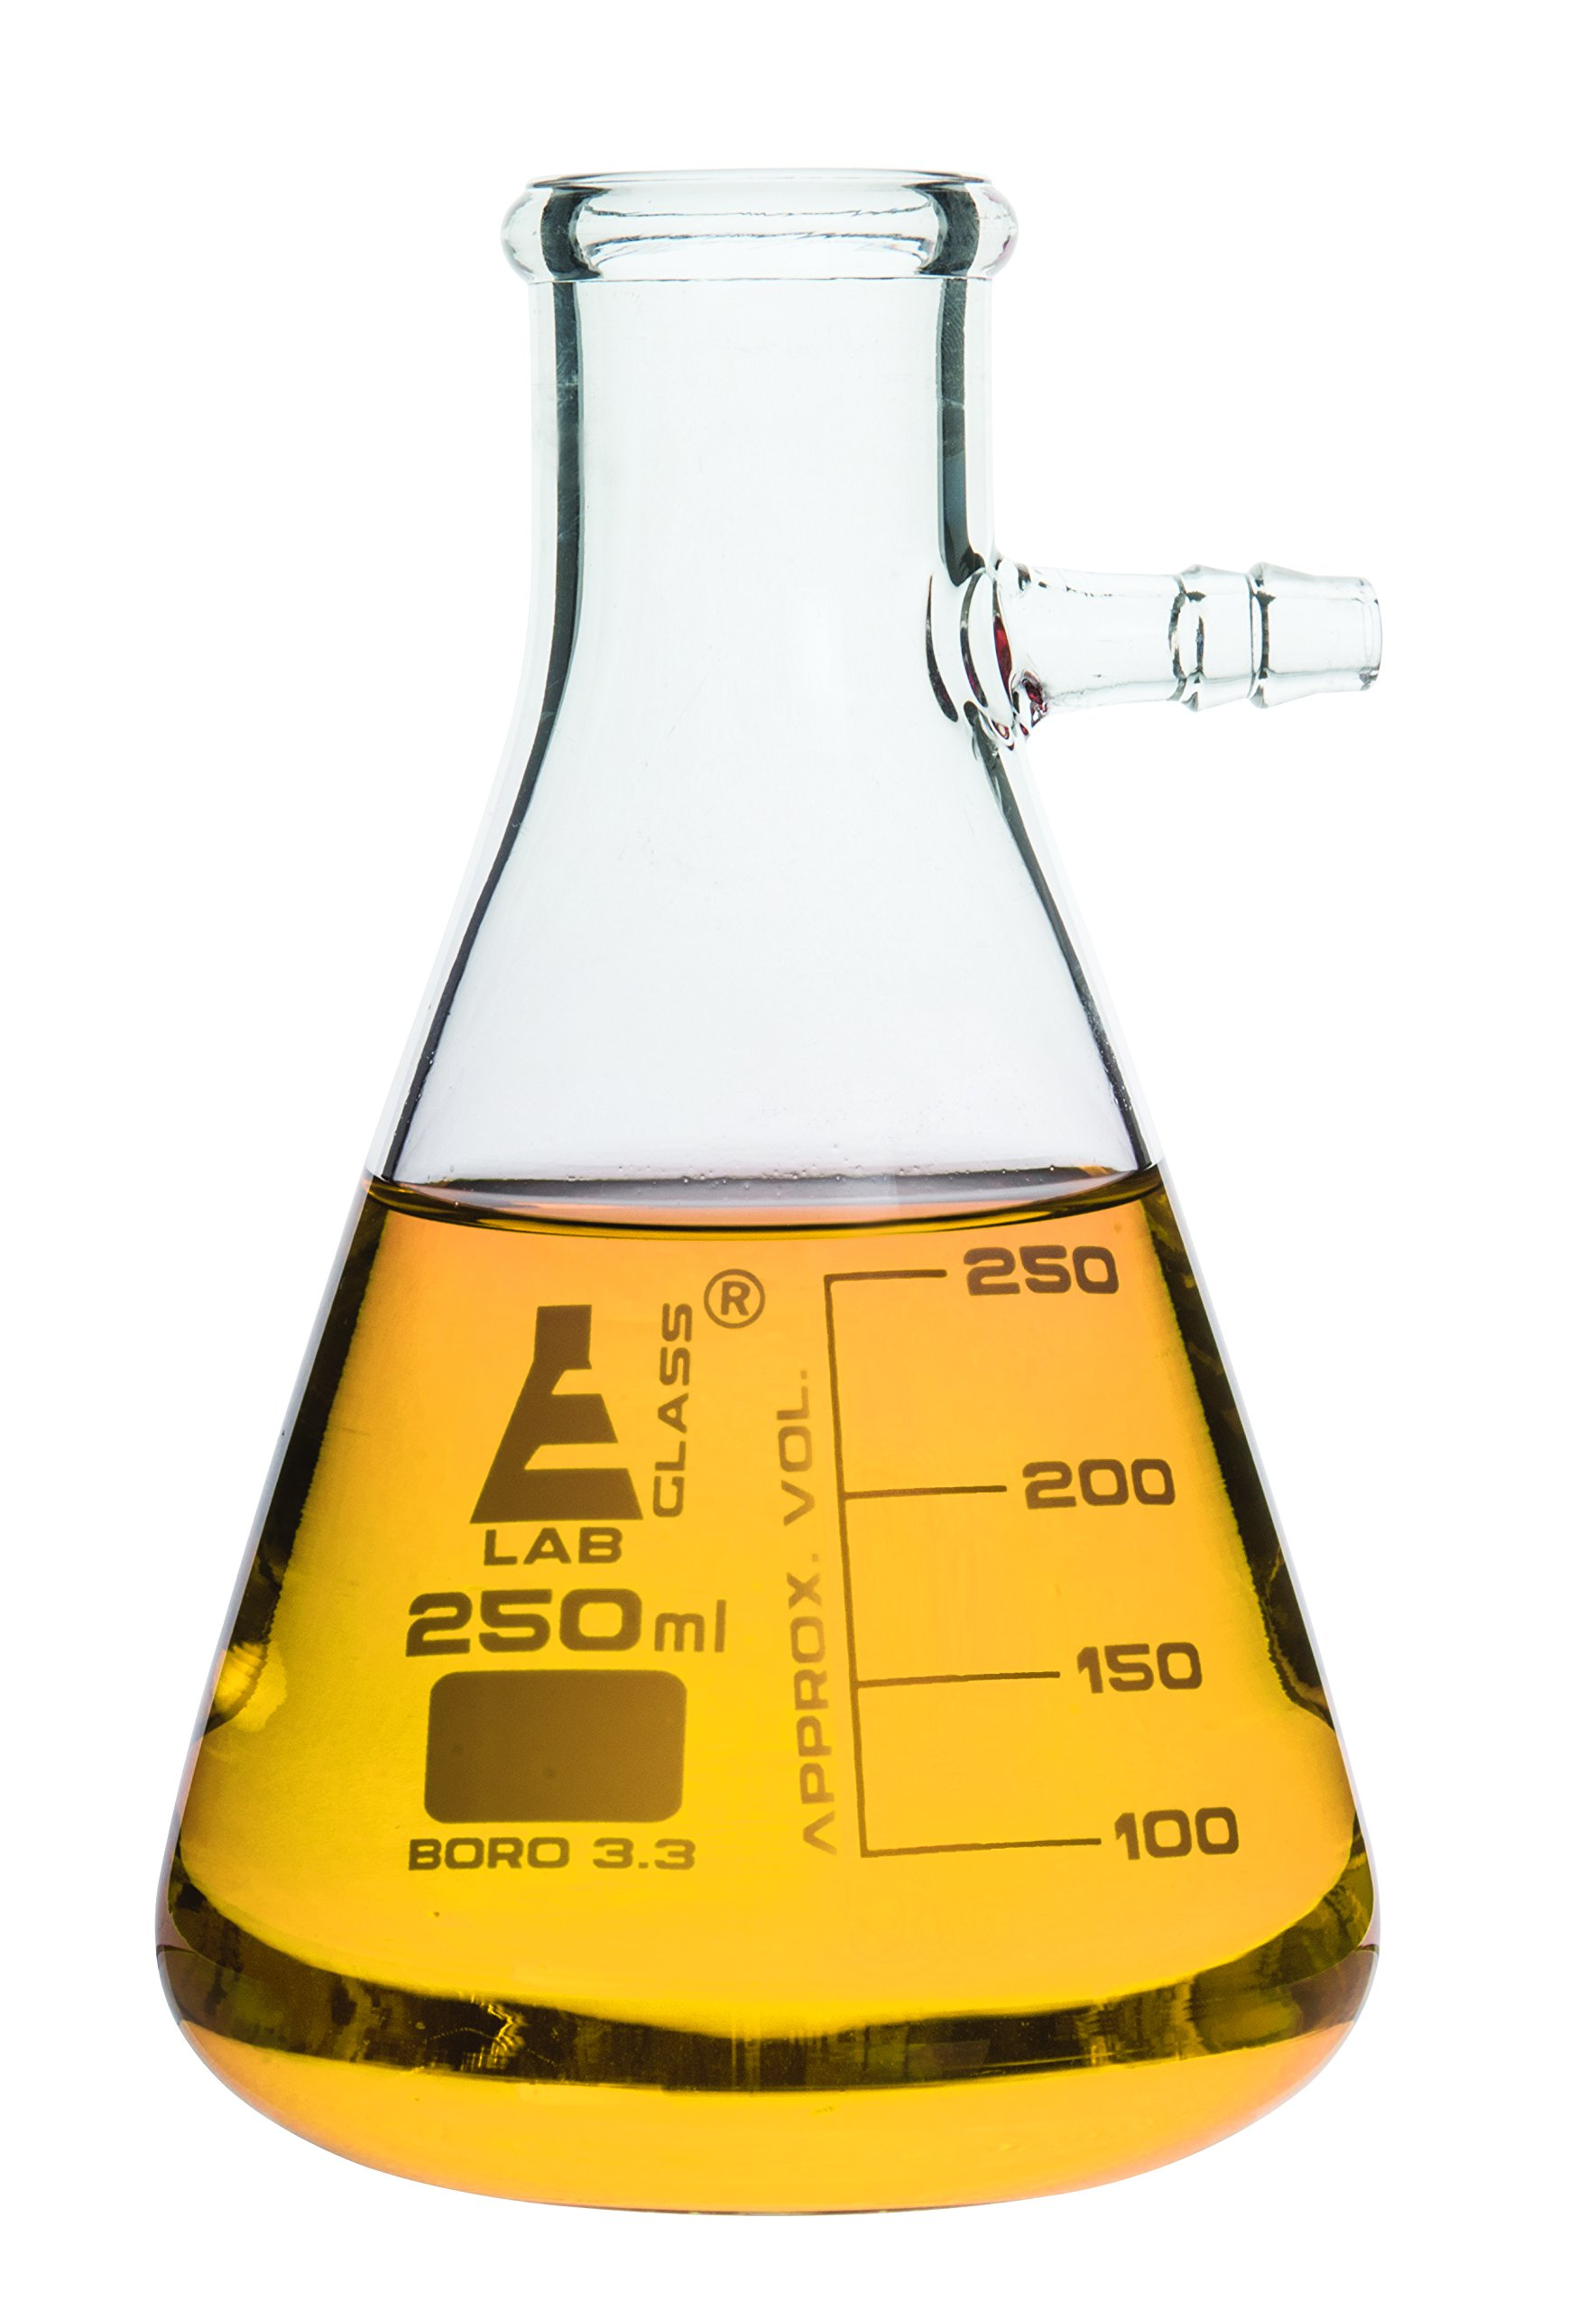 EISCO Filtering Flask, 250ml, borosilicate glass ( Single Flask) 50ml graduations with integrated side arm